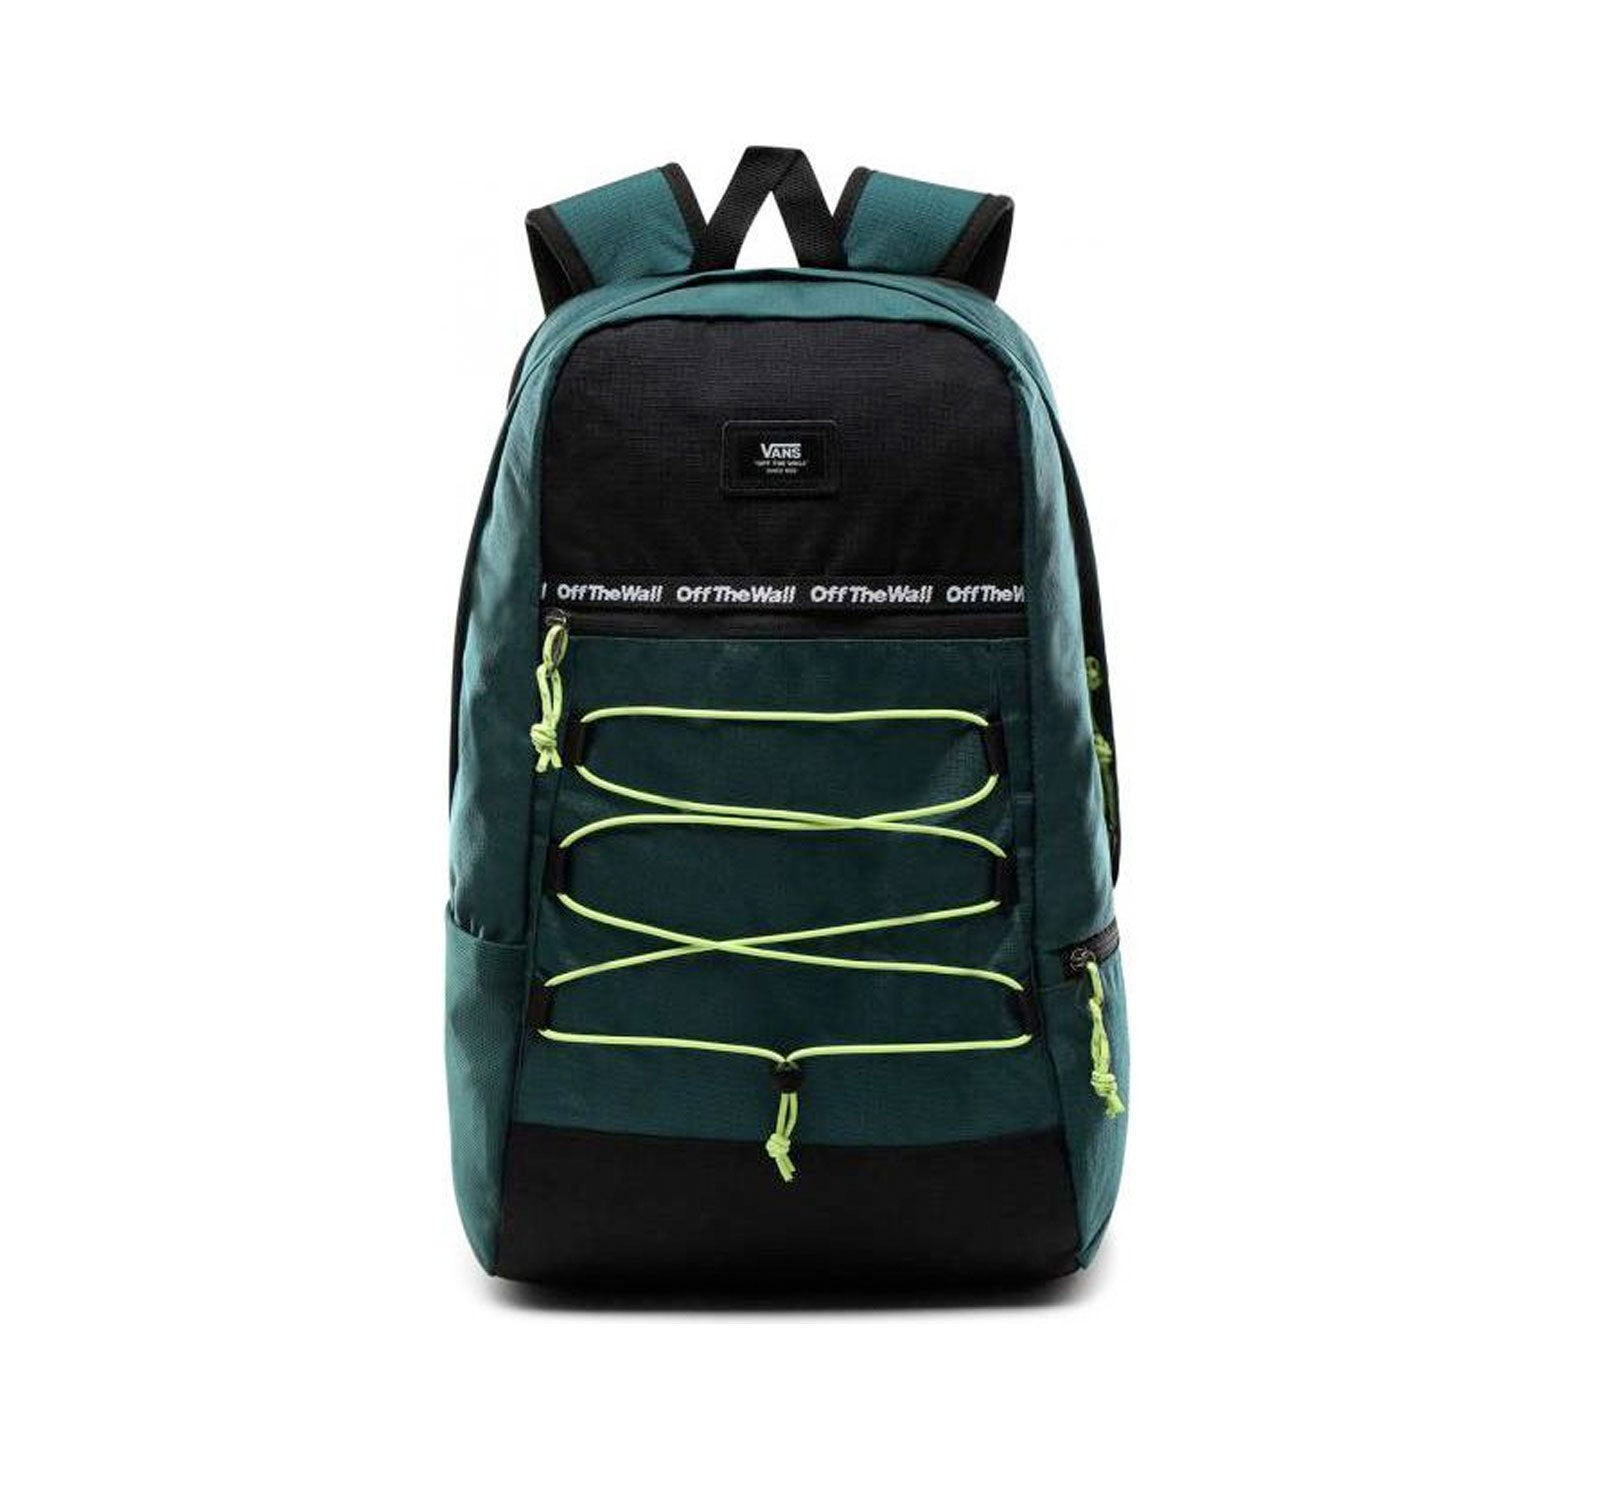 Vans Snag Plus Backpack - Black/Teal